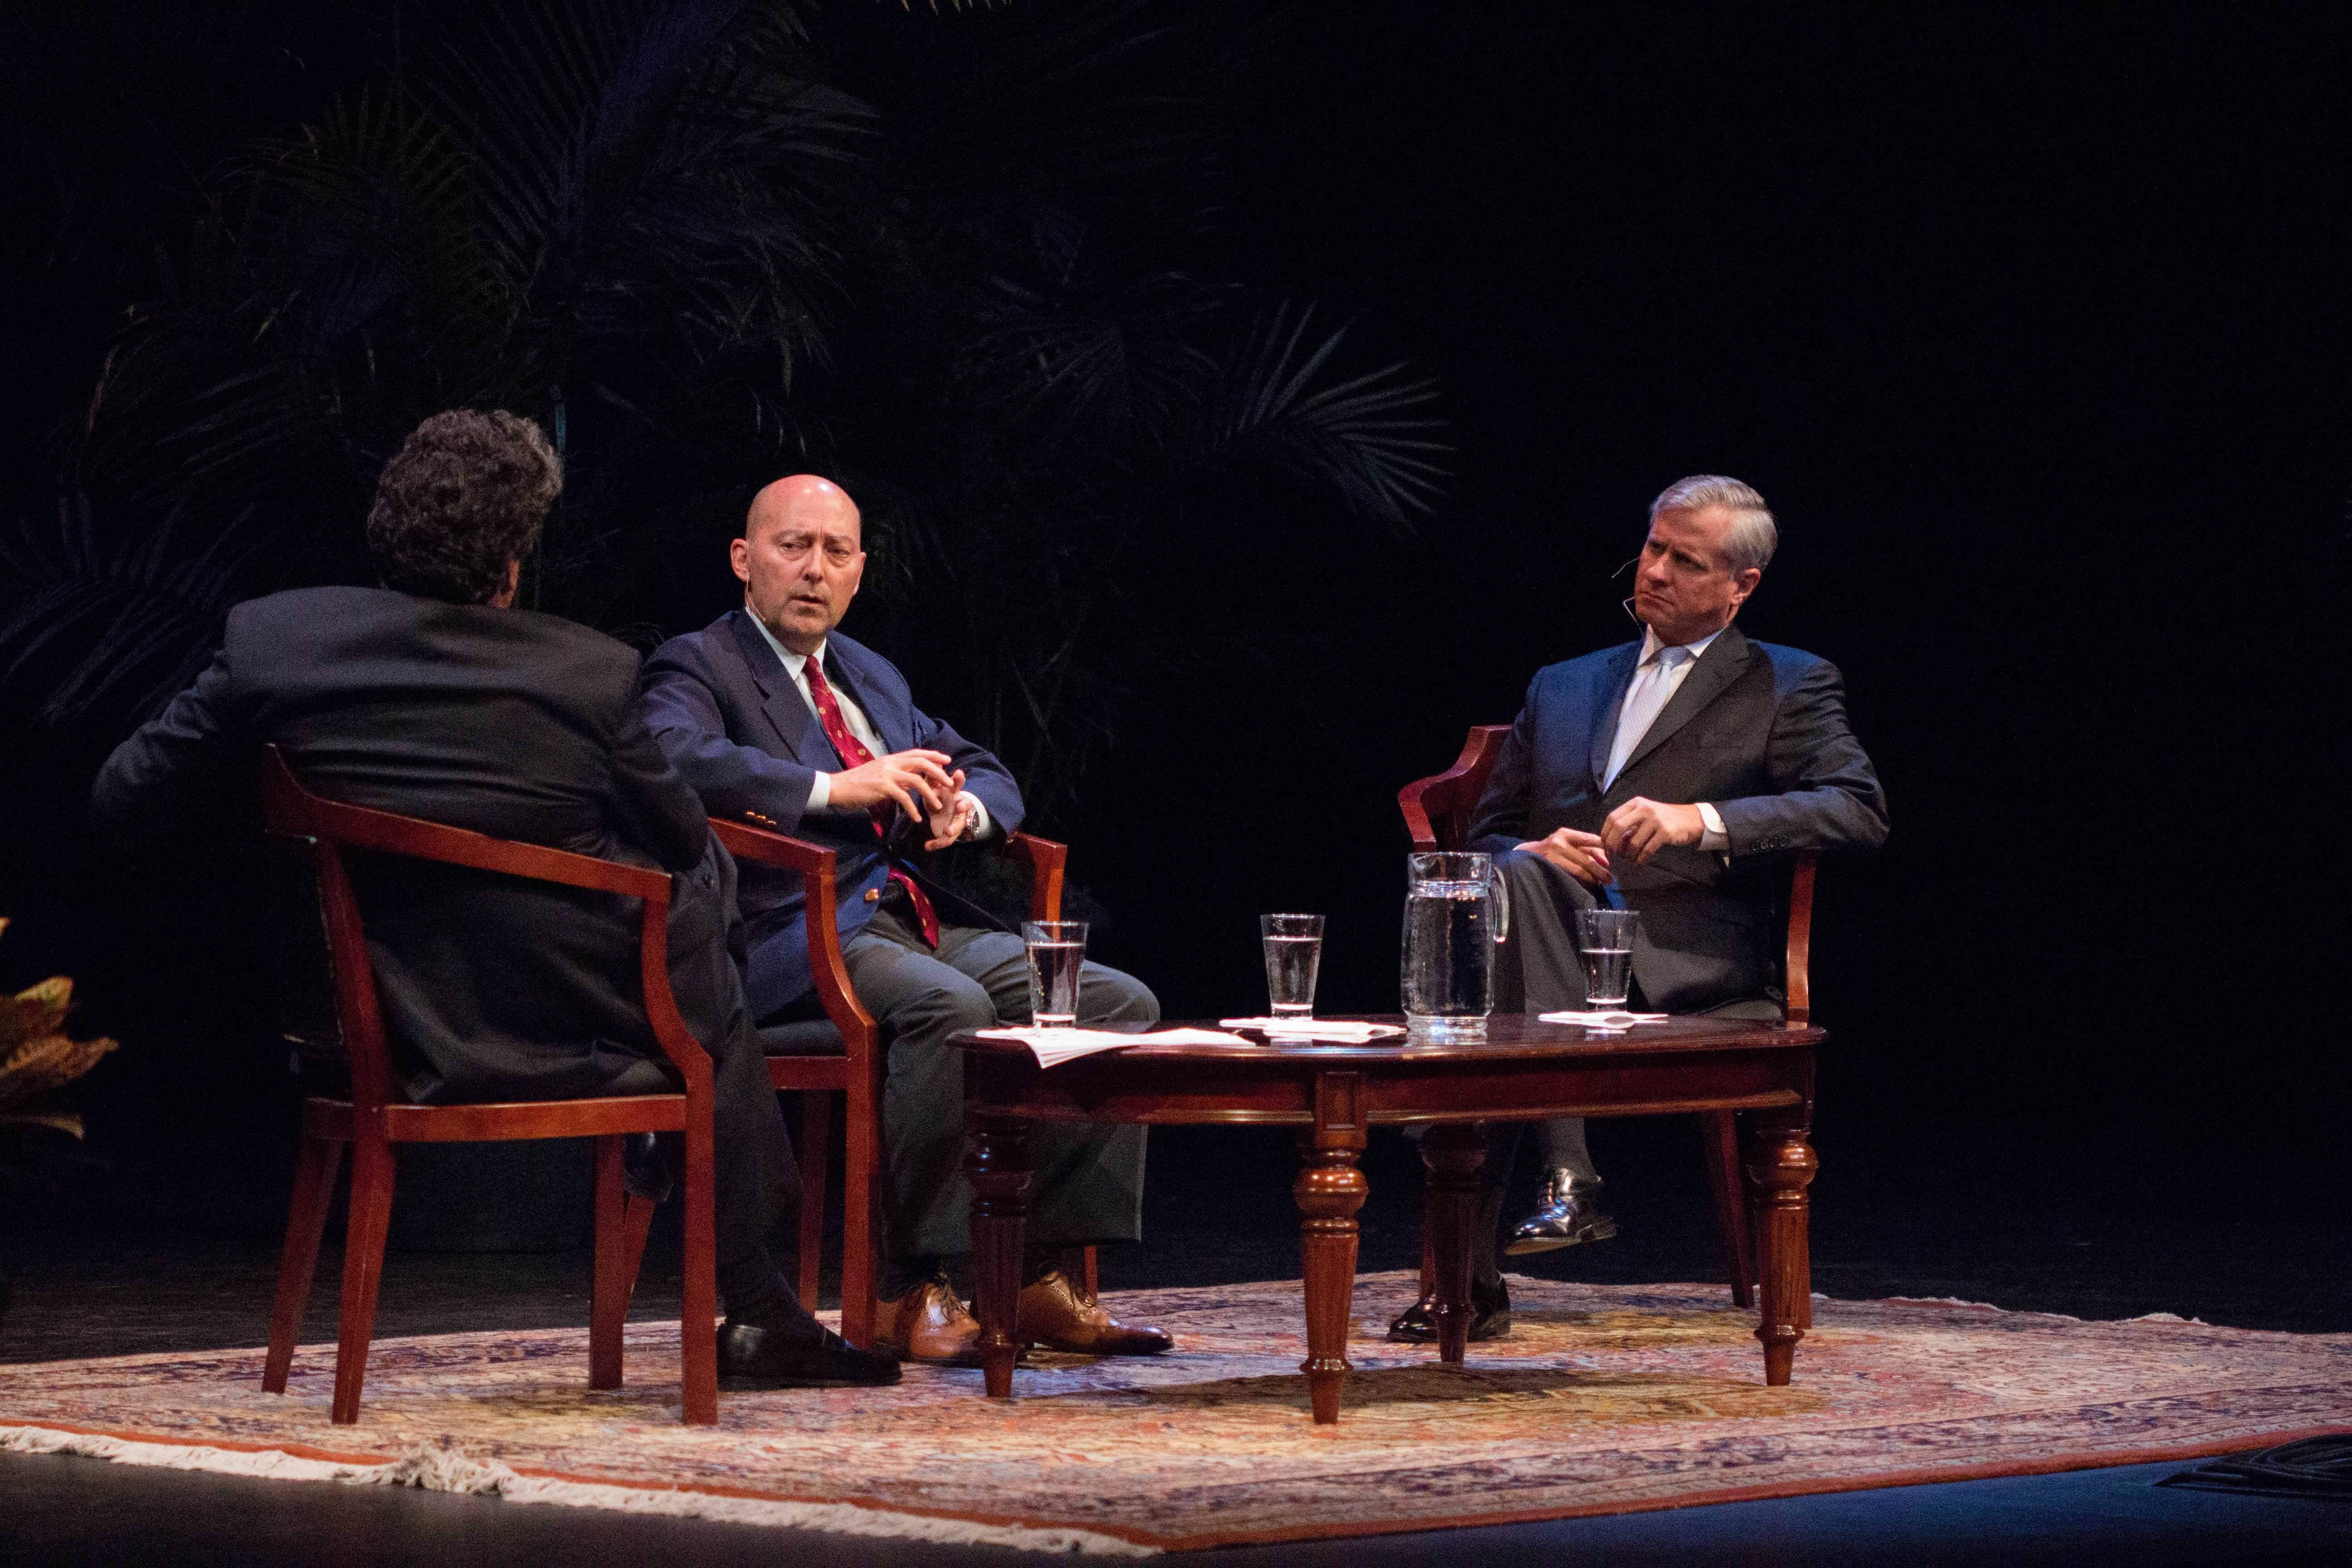 Admiral James Stavridis, former Supreme Allied Commander for NATO, joins Chancellor Zeppos and Jon Meacham to discuss global security at the Chancellor's Lecture Series, held at Blair's Ingram Hall on Tuesday, October 3, 2017.